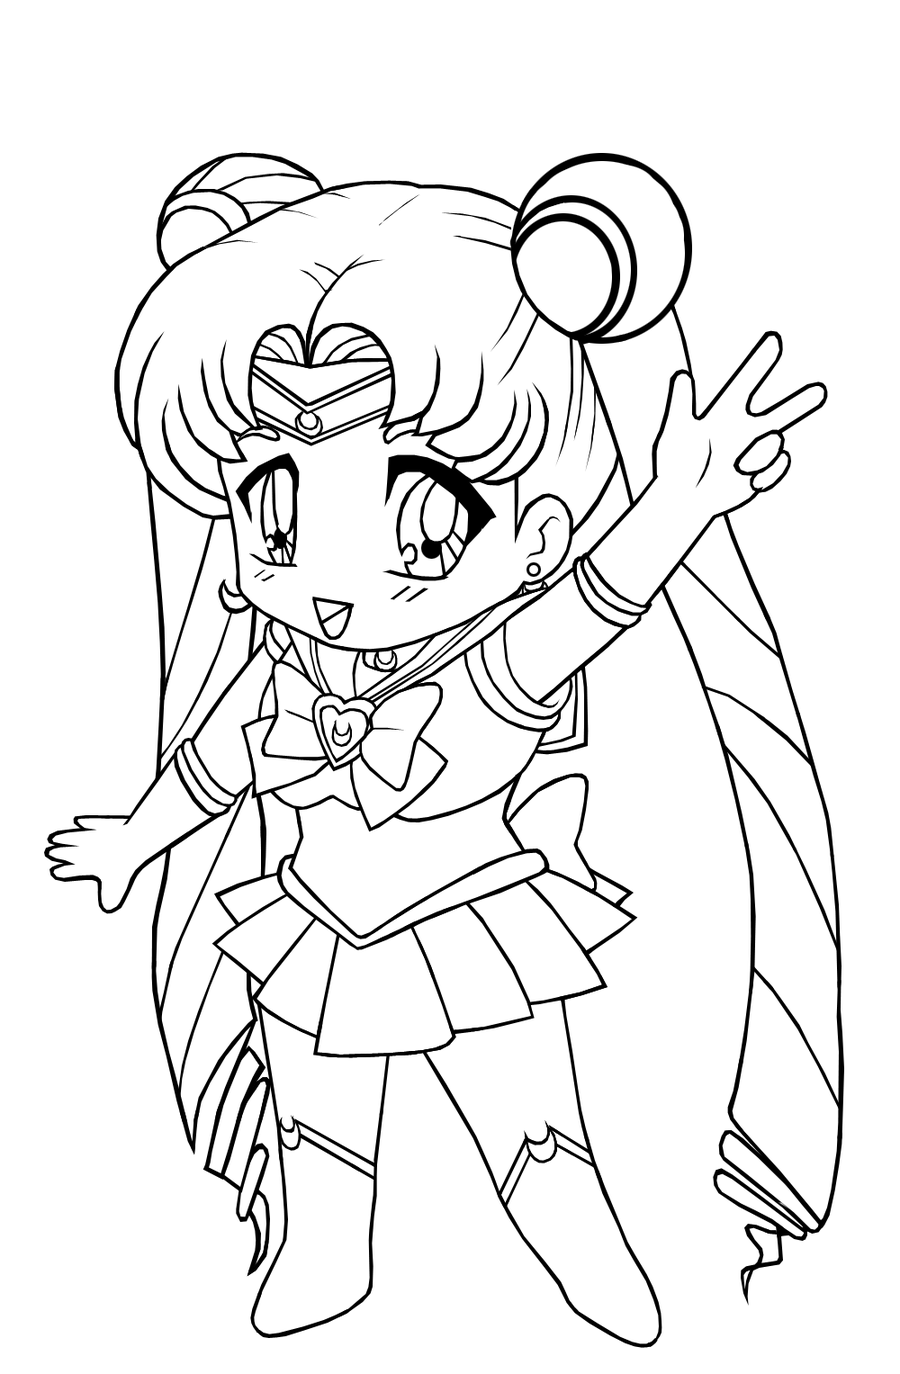 coloring pages anime anime coloring pages best coloring pages for kids coloring pages anime